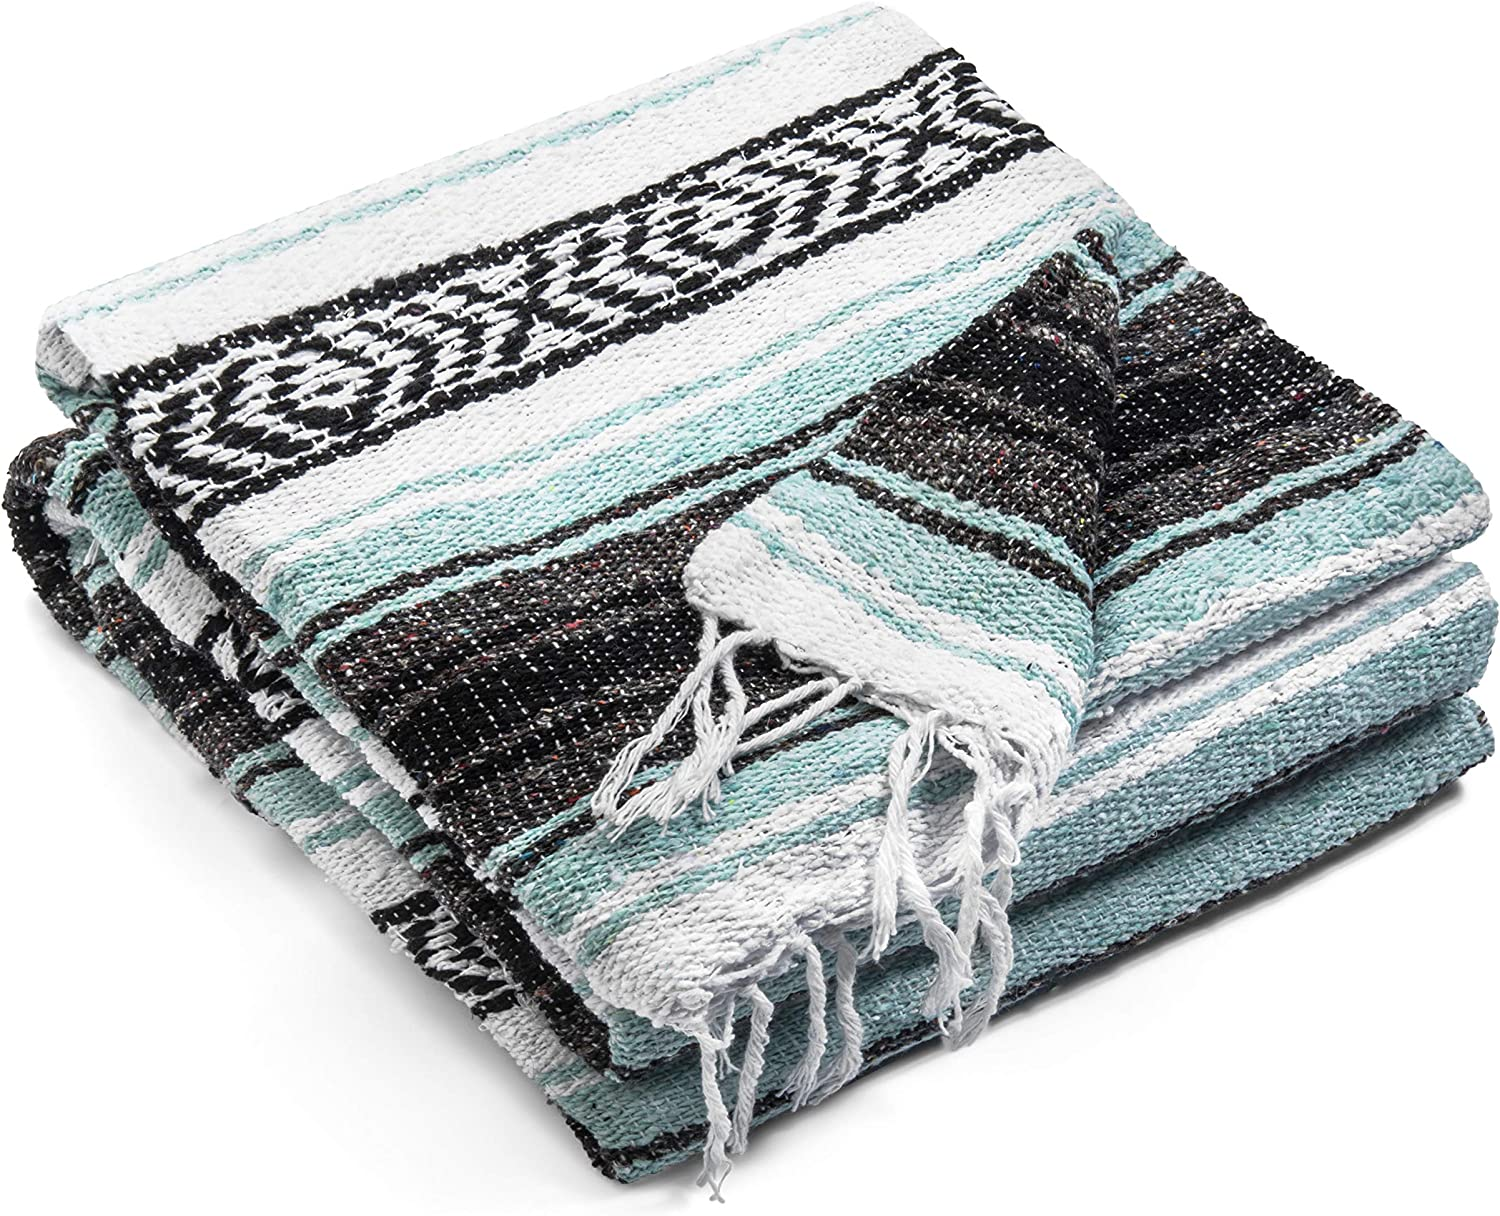 Authentic Mexican Blanket - Premium Yoga Blanket Beach Blanket - Perfect Picnic Blanket, Travel Blanket, Outdoor Blanket - Well Made Yoga Bolster: Clothing